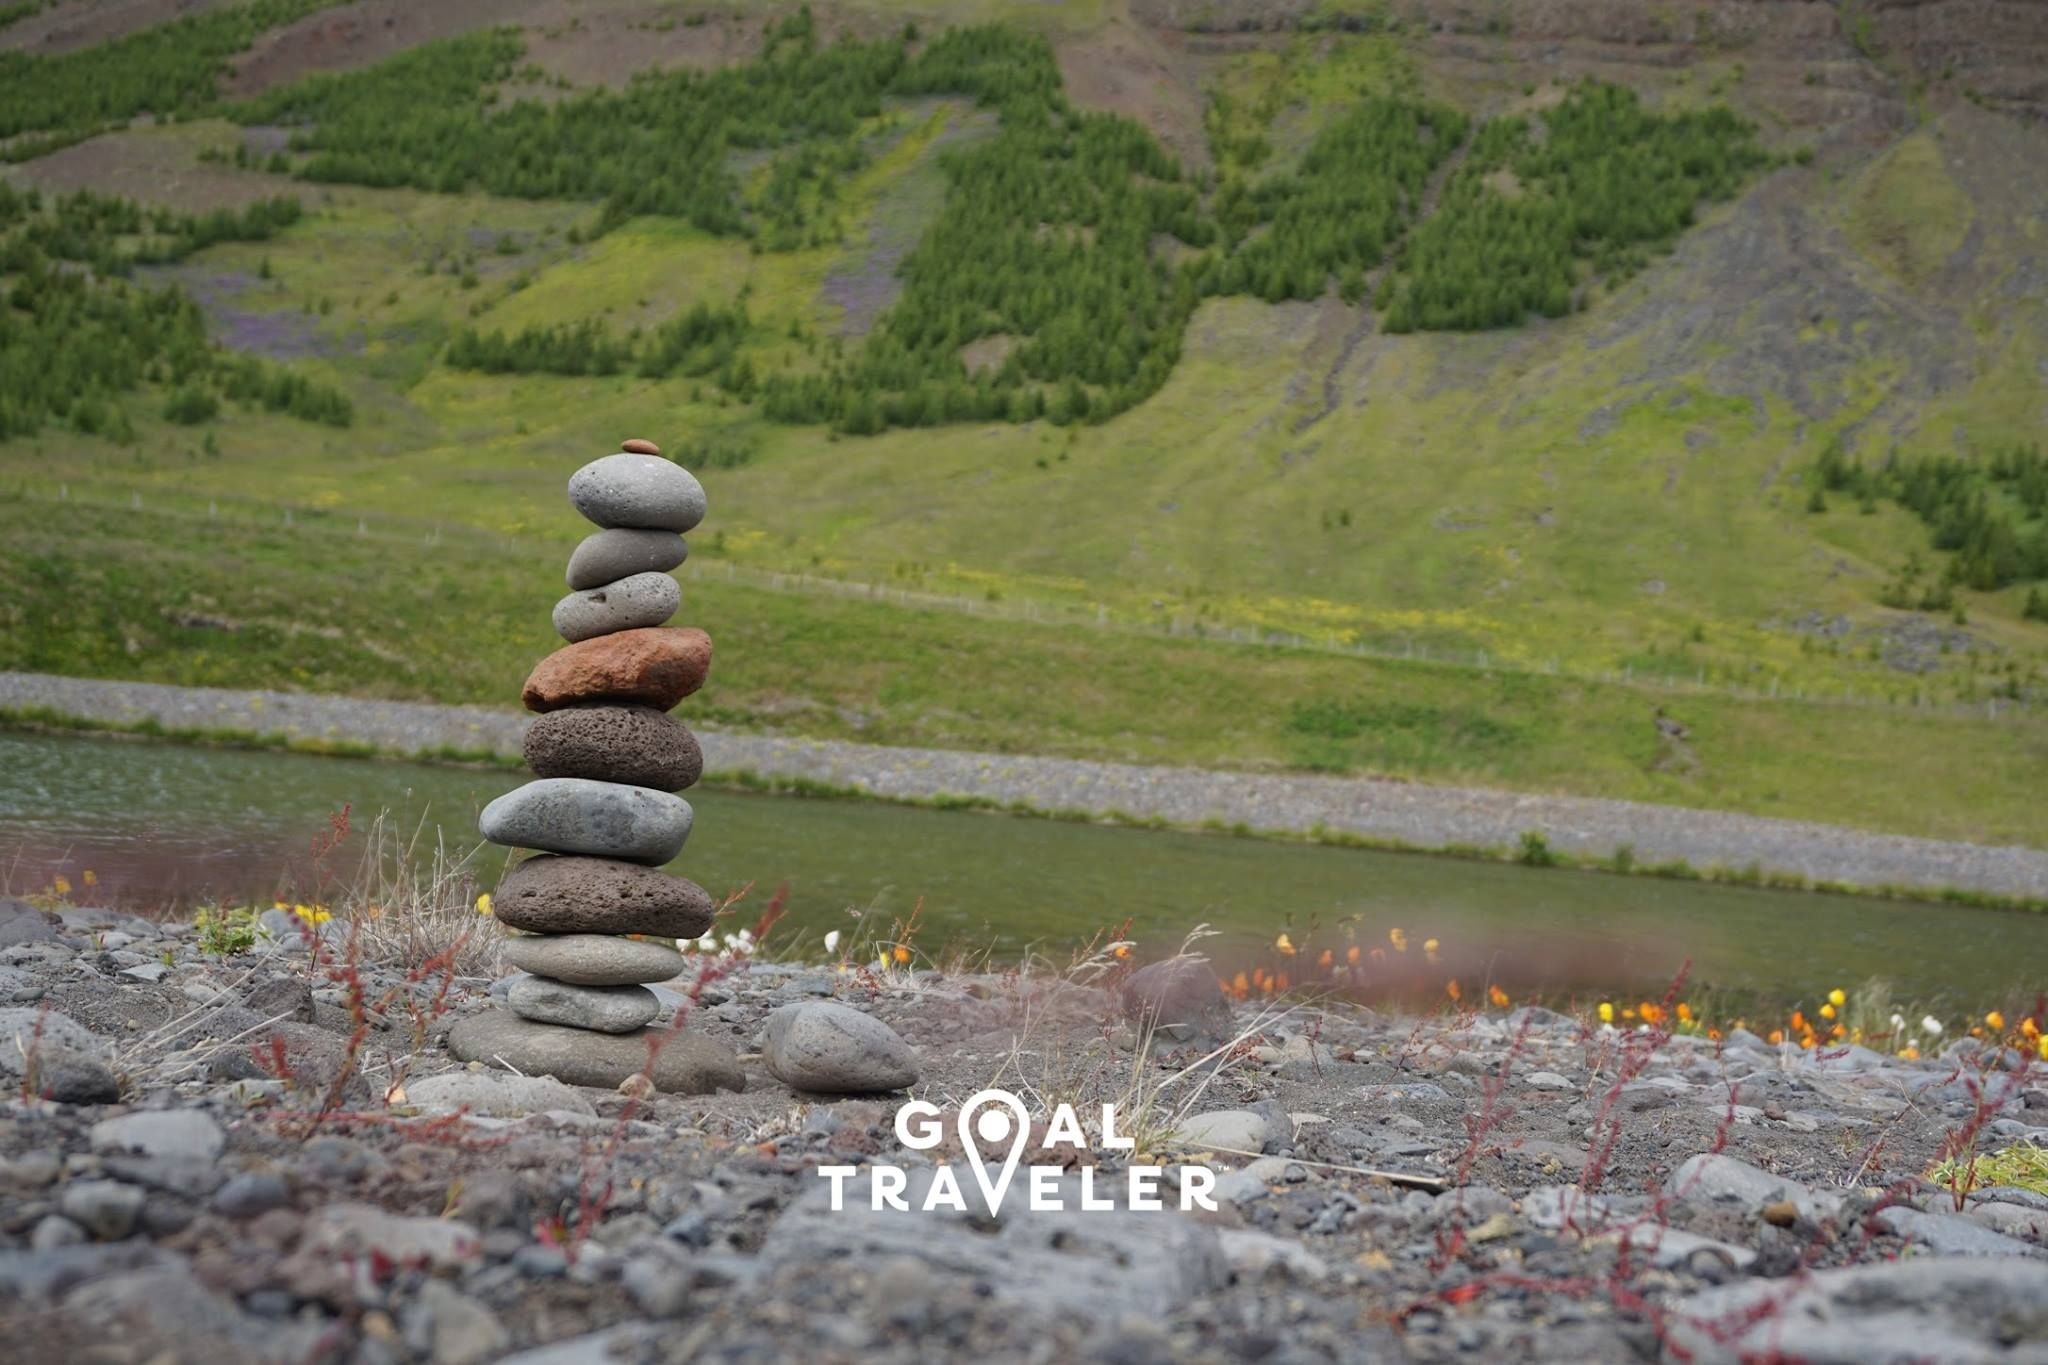 Are you an adventurer? Like to be outdoors? Be amongst the nature? Yet you've only experienced the nature of your backyard? Get Out and Live with GOAL Traveler. Sign up at goaltraveler.com to learn how to truly explore! #justgo #iceland